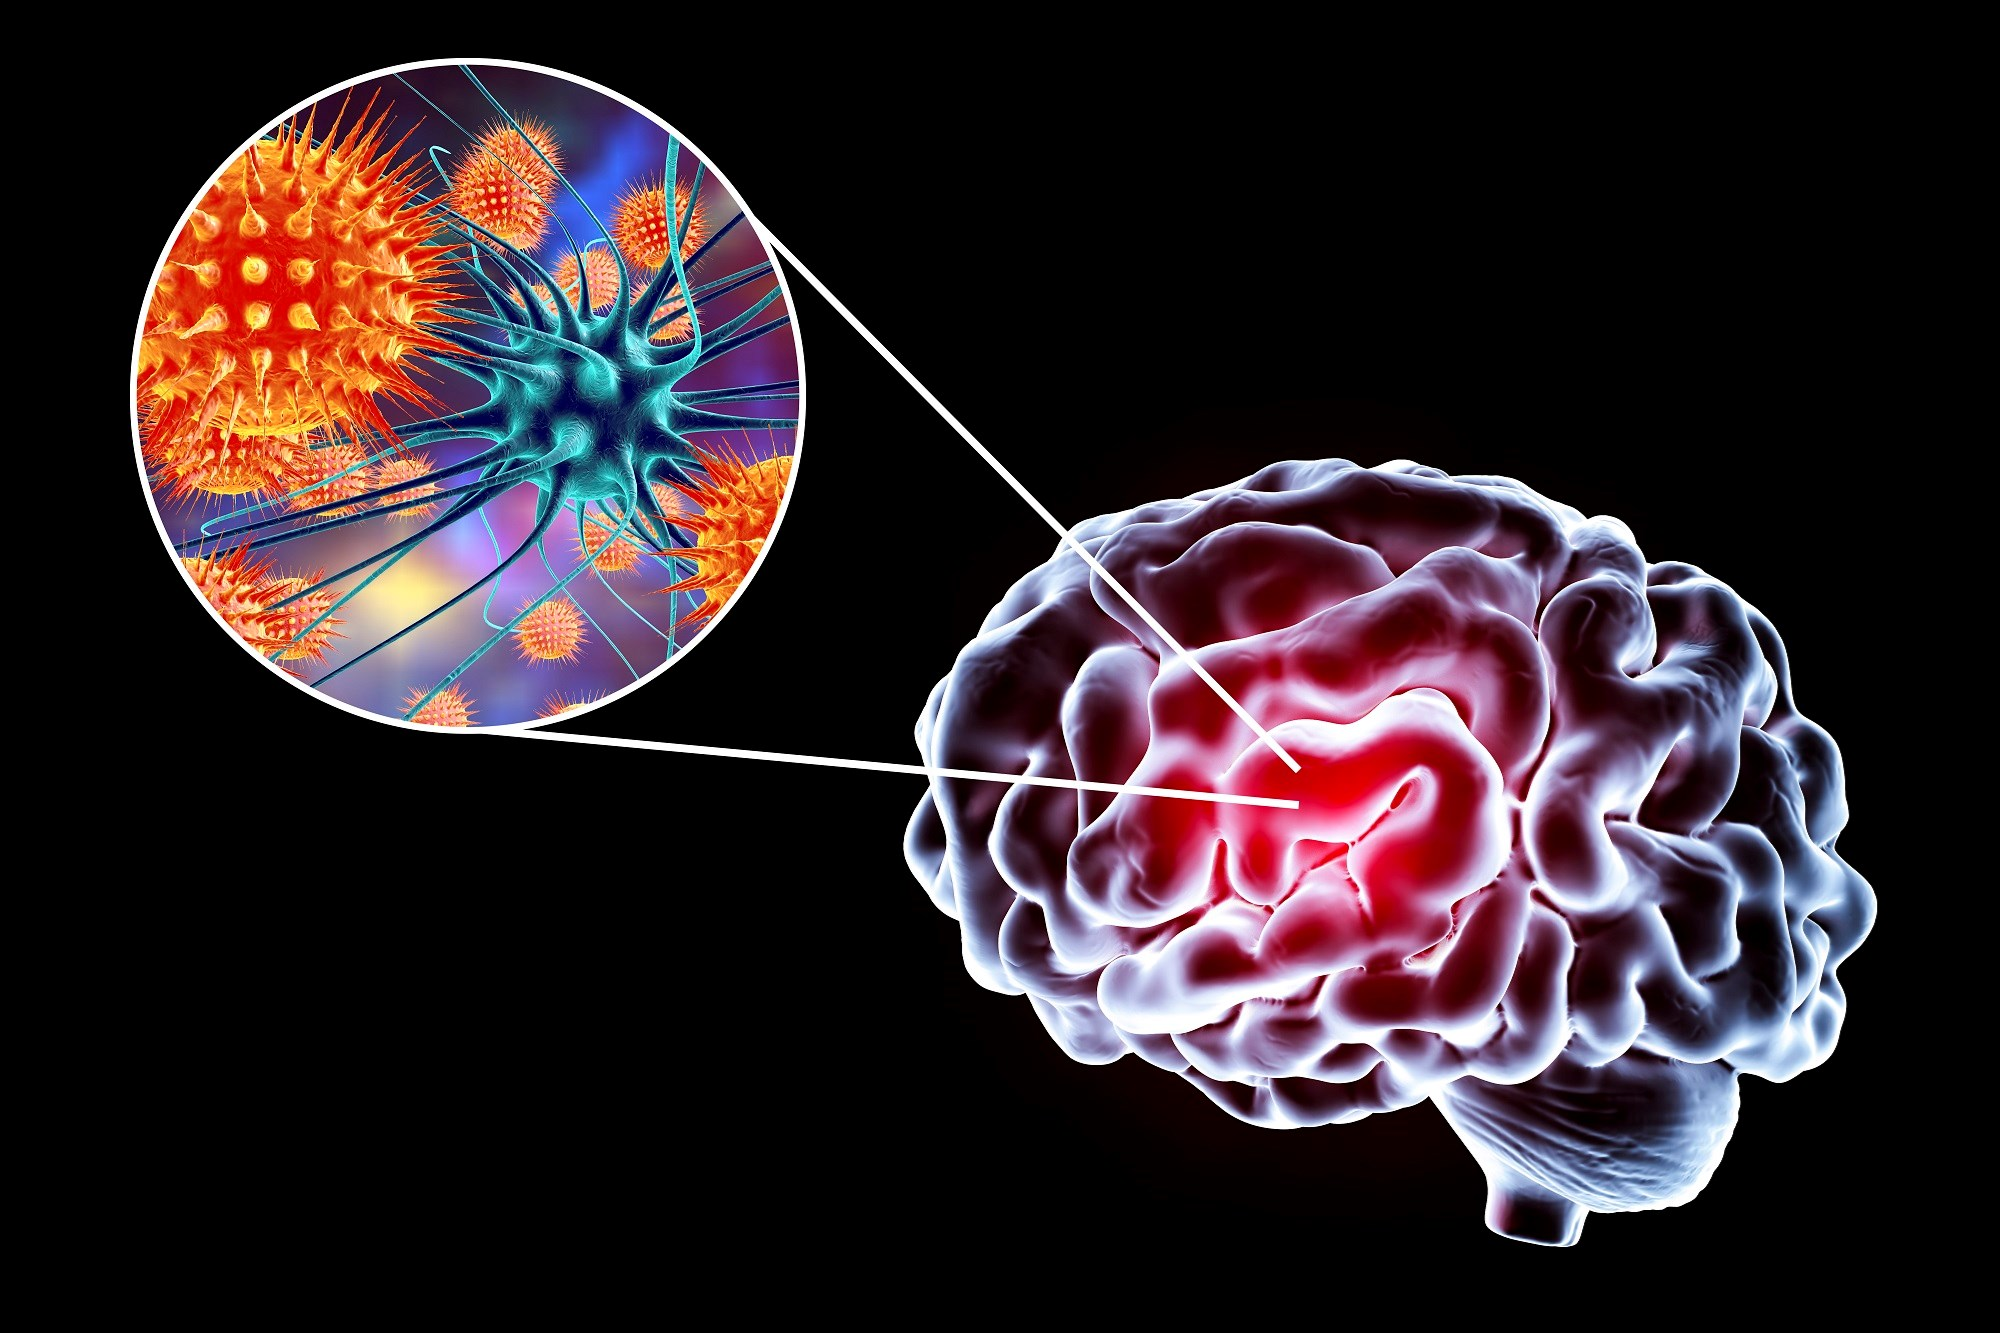 HCV Neuropsychiatric Symptoms Likely Linked to Virus' Effects on Brain Function